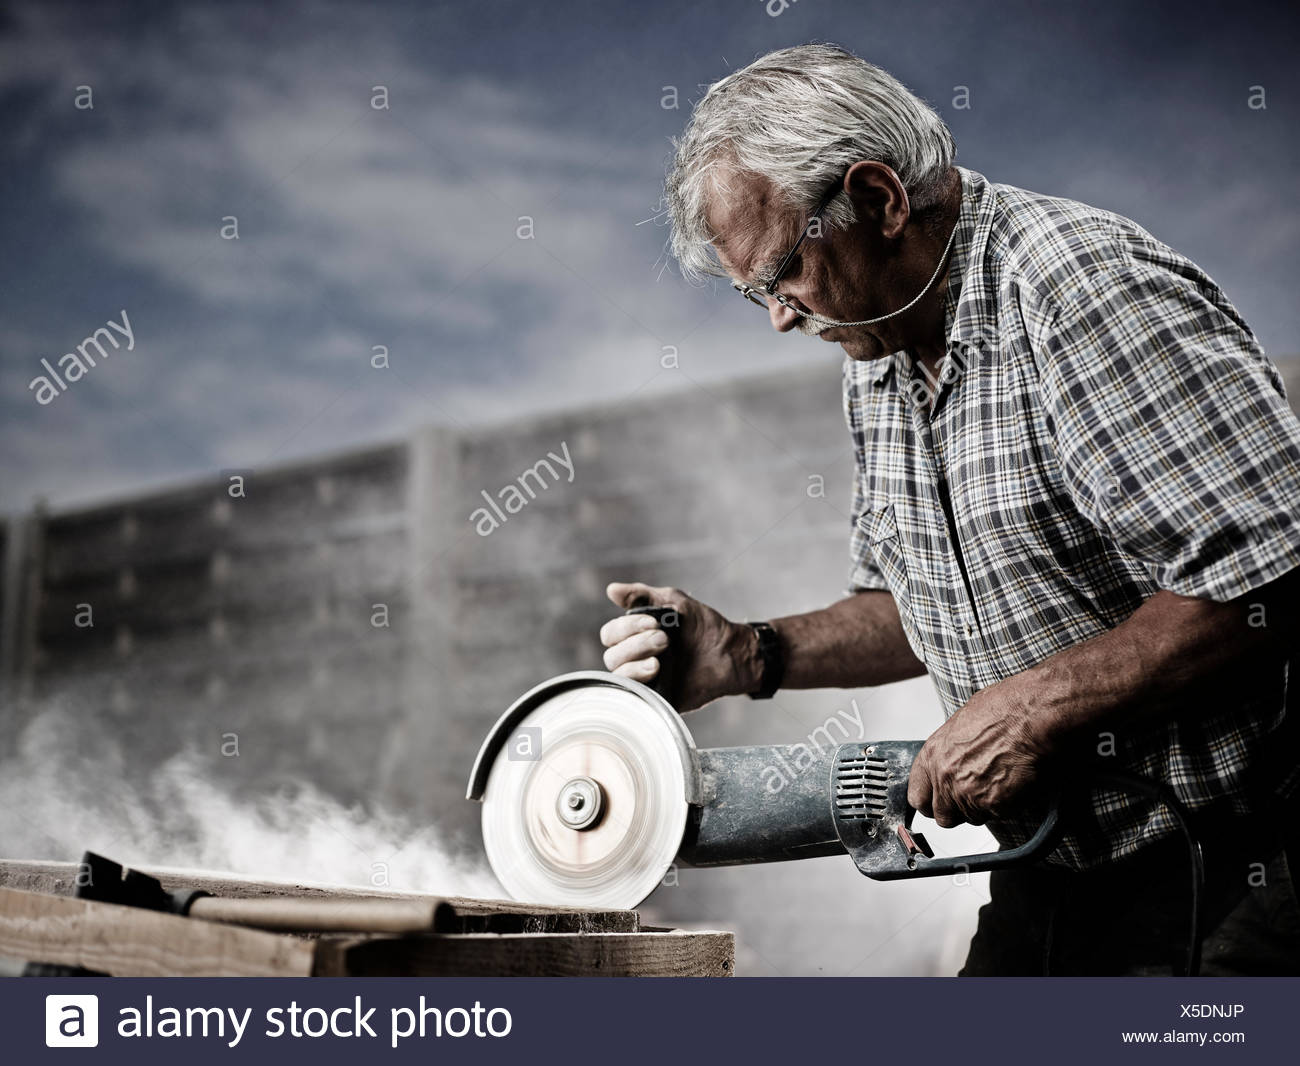 Stonemason cutting a stone slab with an angle grinder with a cutting disc, Reith im Alpbachtal, Kufstein District, North Tirol - Stock Image